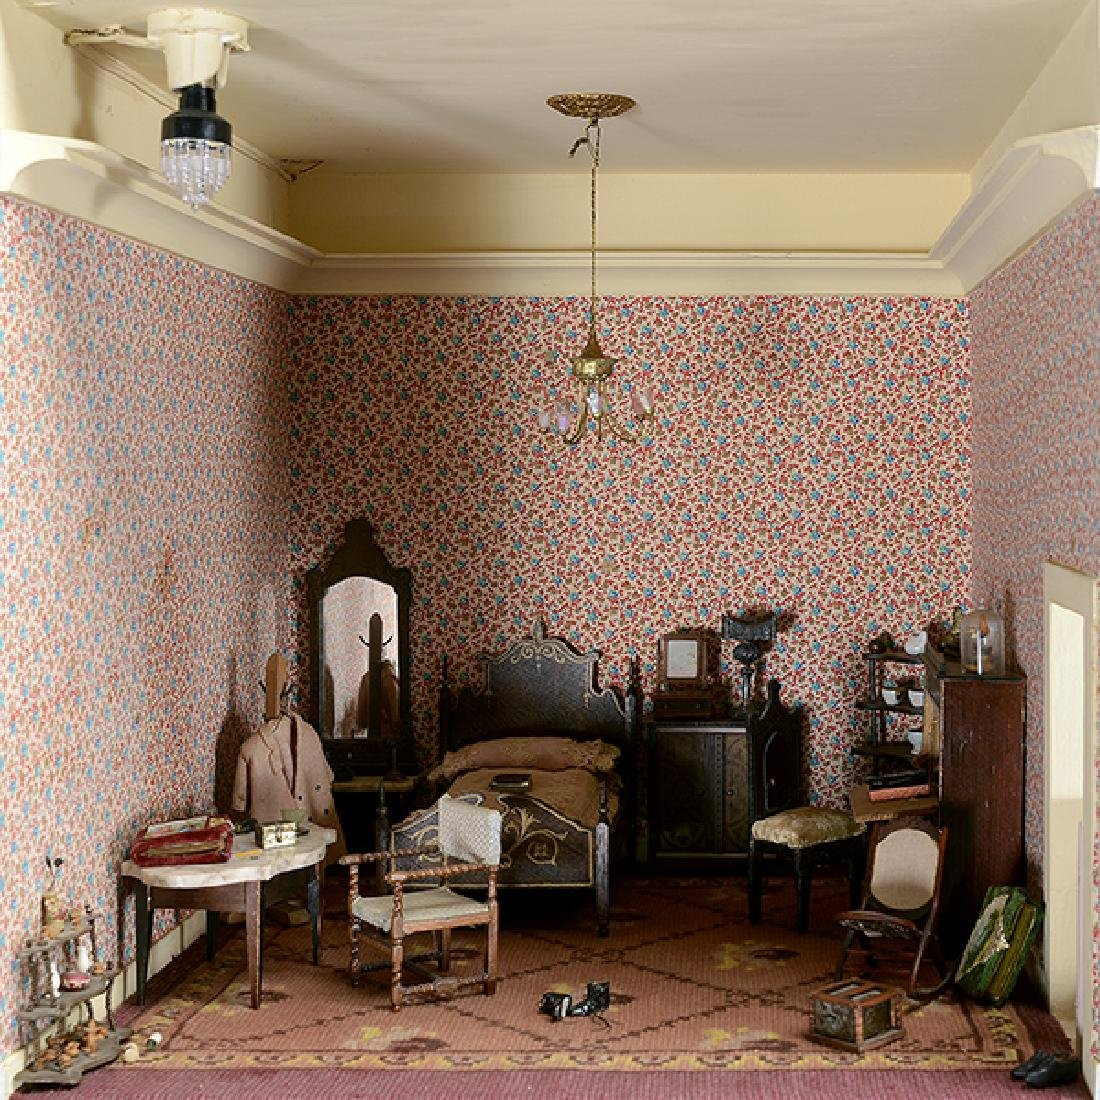 Contents of Rococo Revival Bedroom, Mother Larke